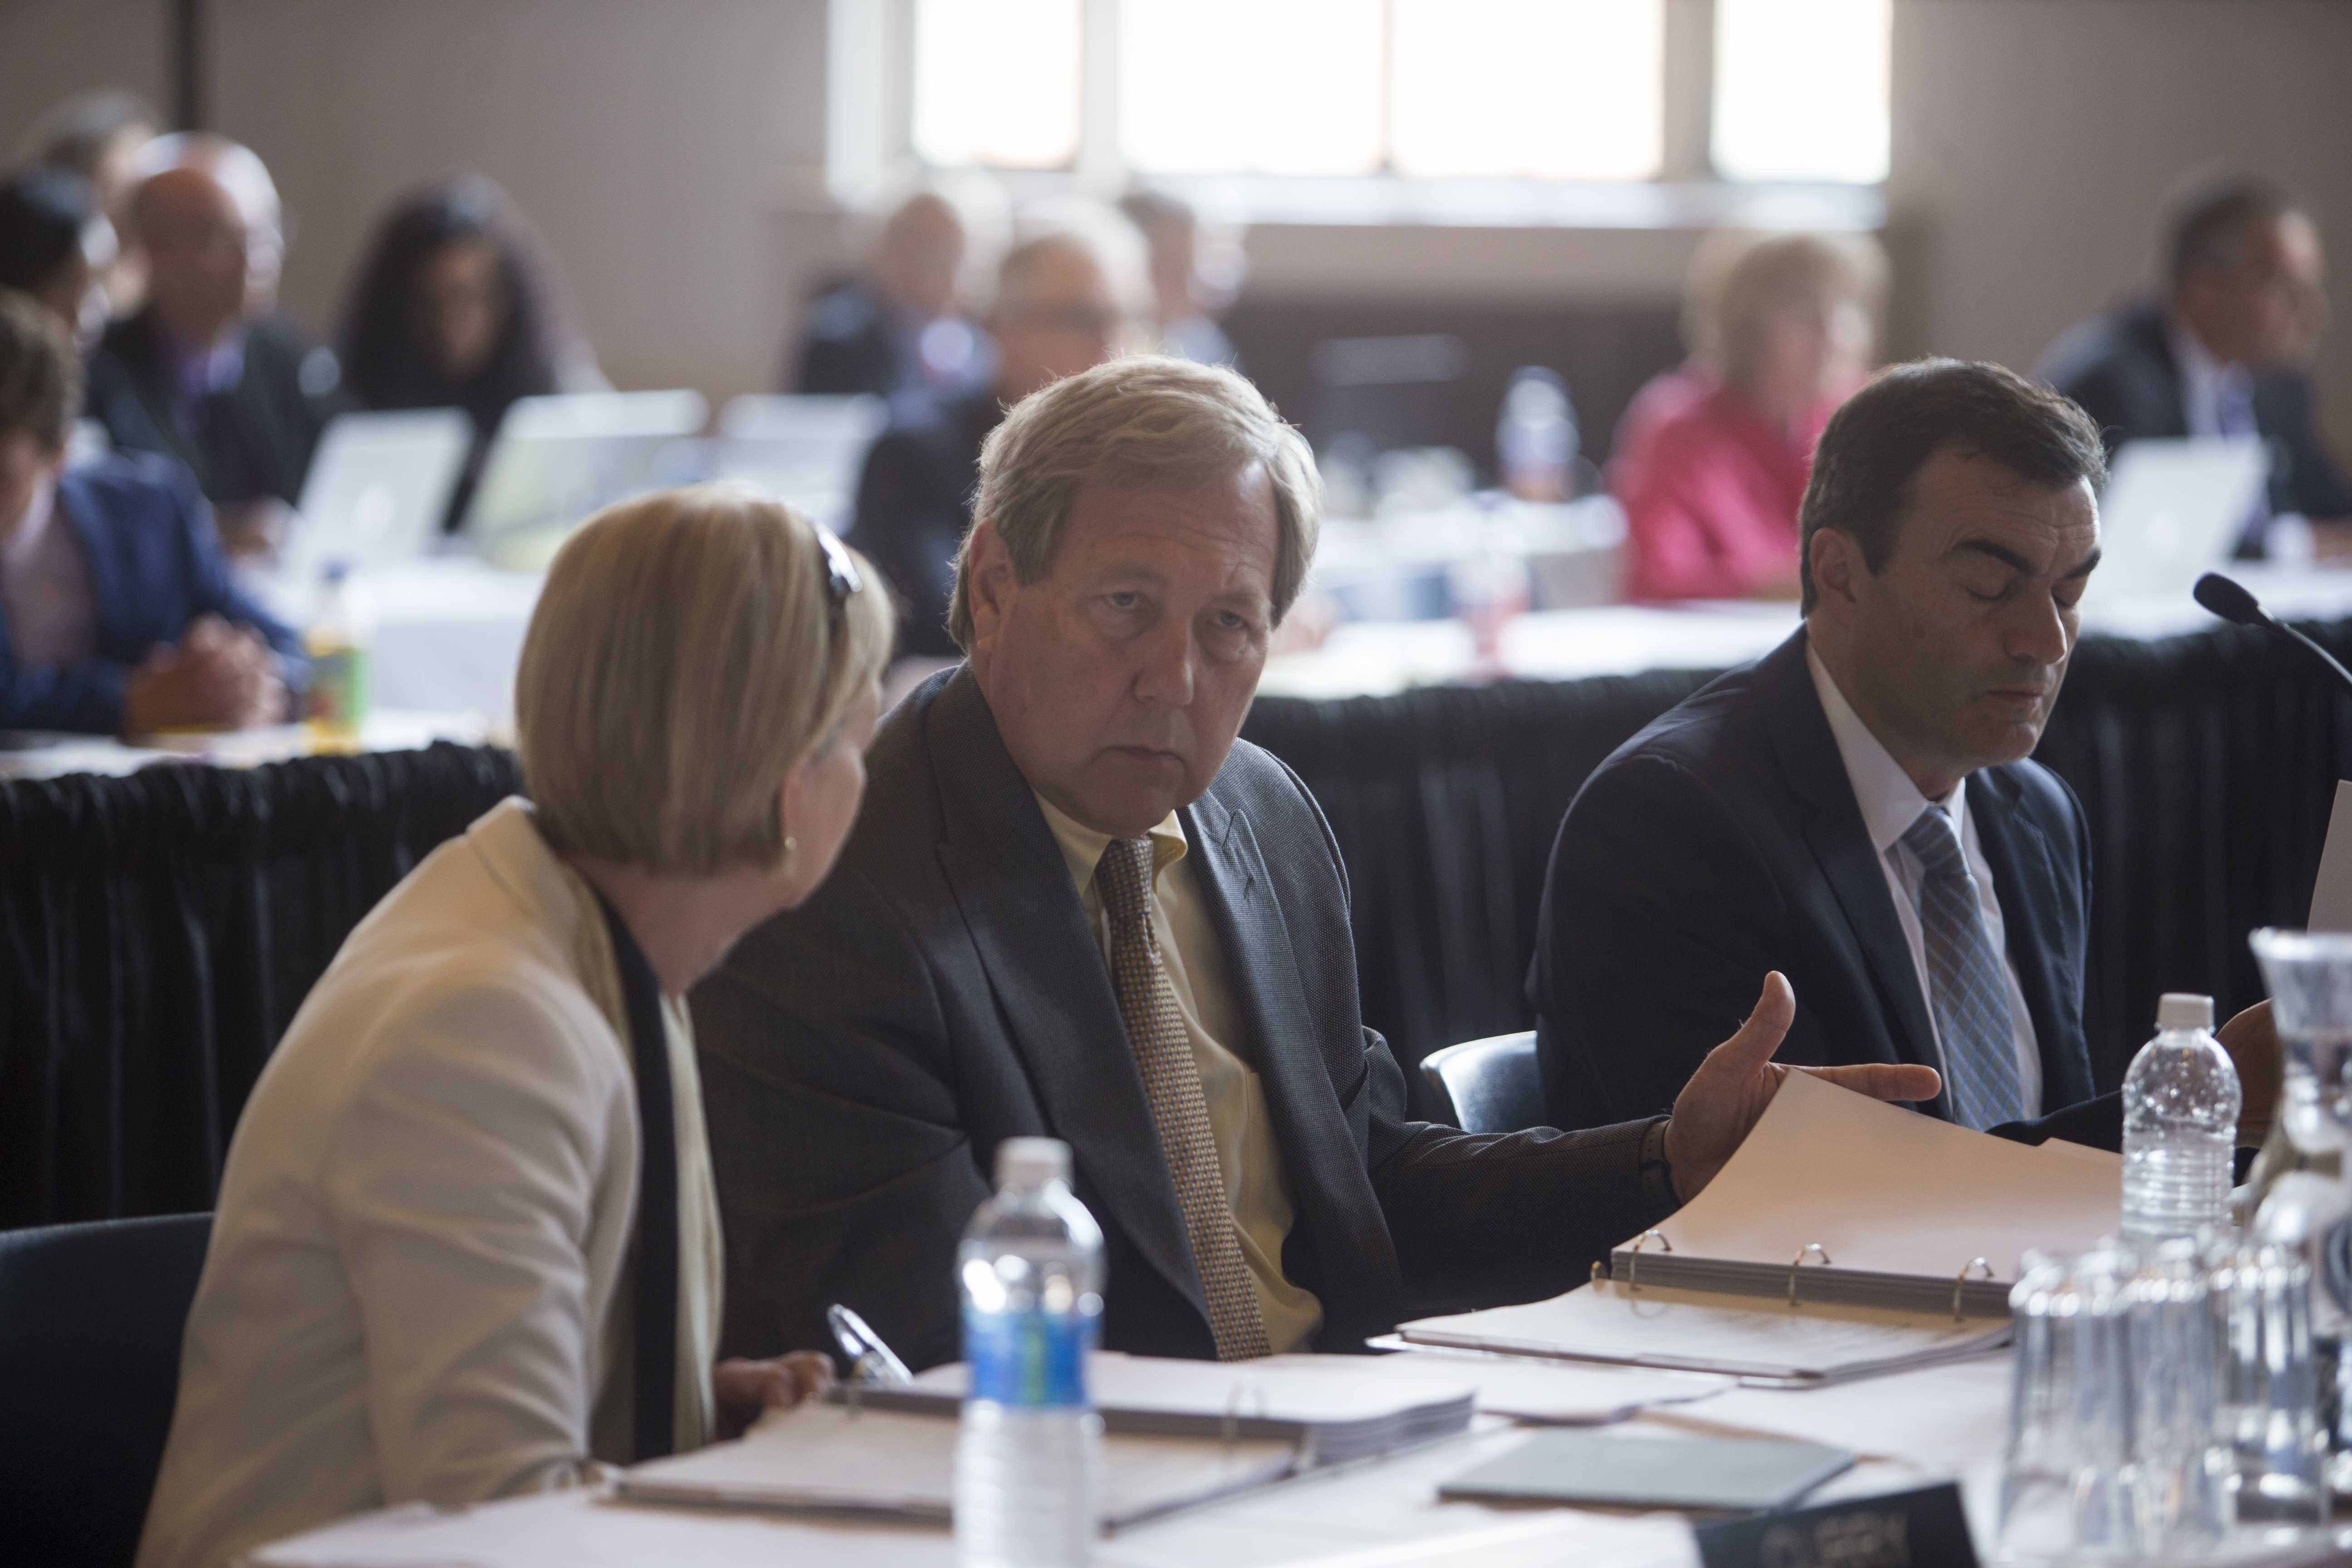 University of Iowa Provost Sue Curry speaks to University President Bruce Harreld during an Iowa Board of Regents Meeting on Thursday June 8, 2017. (The Daily Iowan/Nick Rohlman)